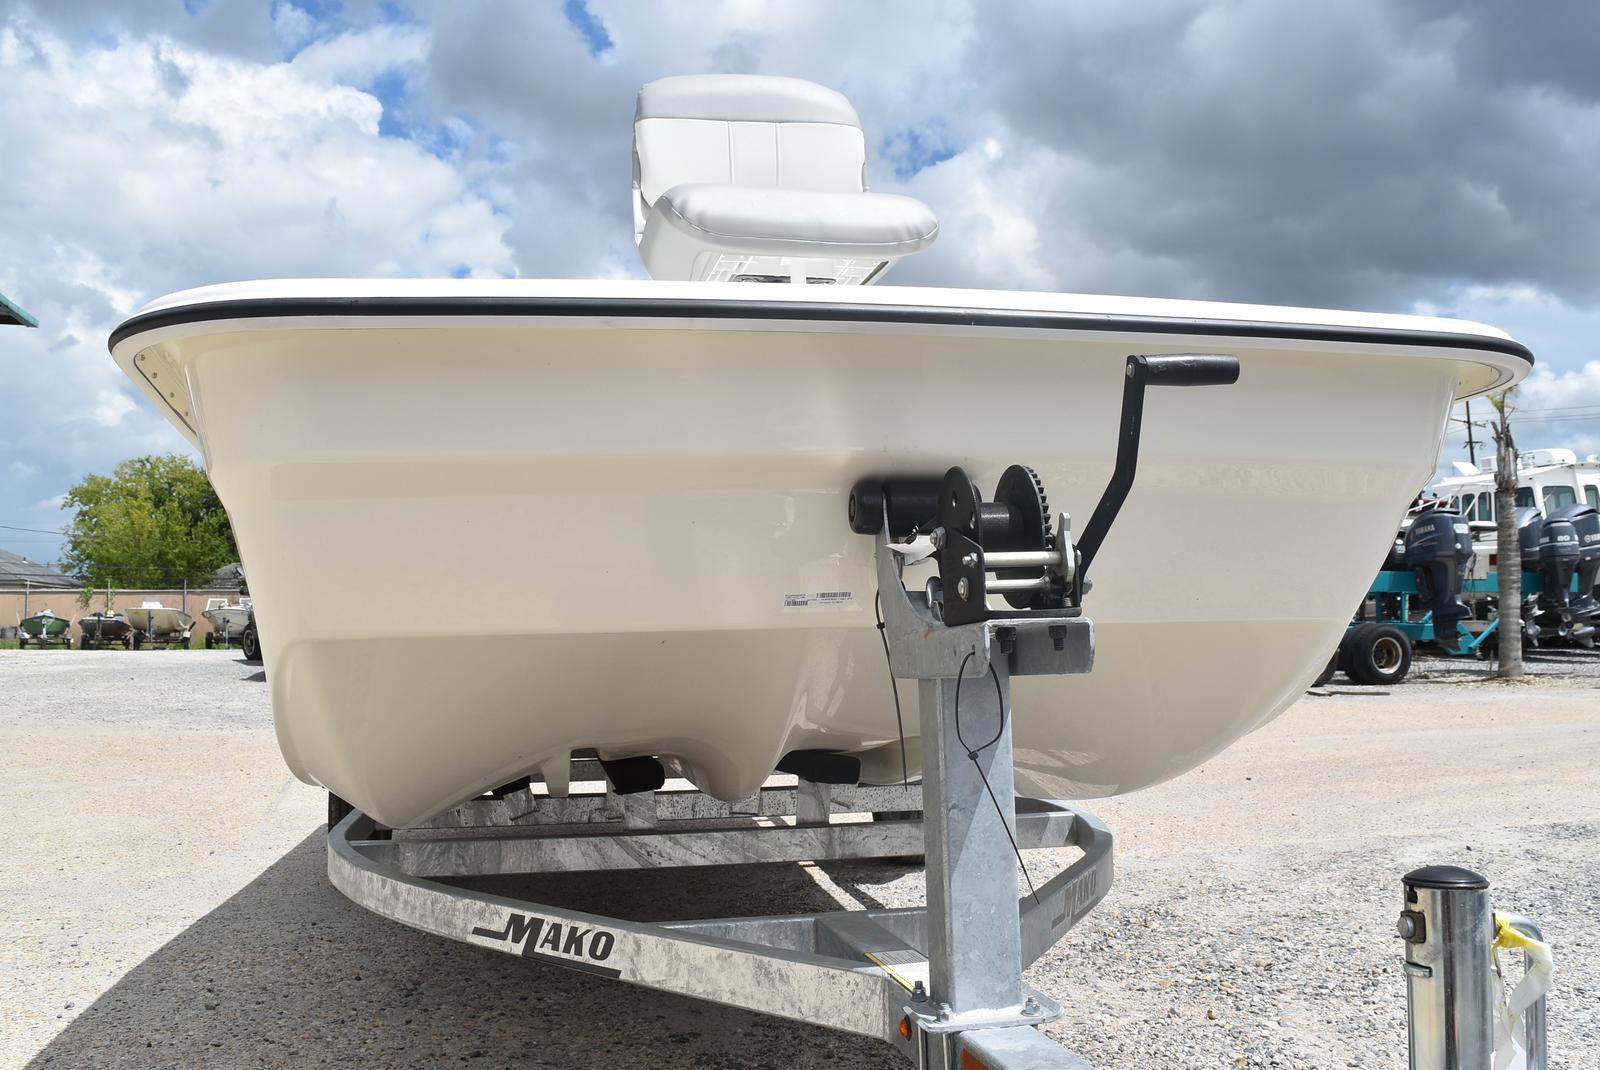 2020 Mako boat for sale, model of the boat is Pro Skiff 17, 75 ELPT & Image # 371 of 702